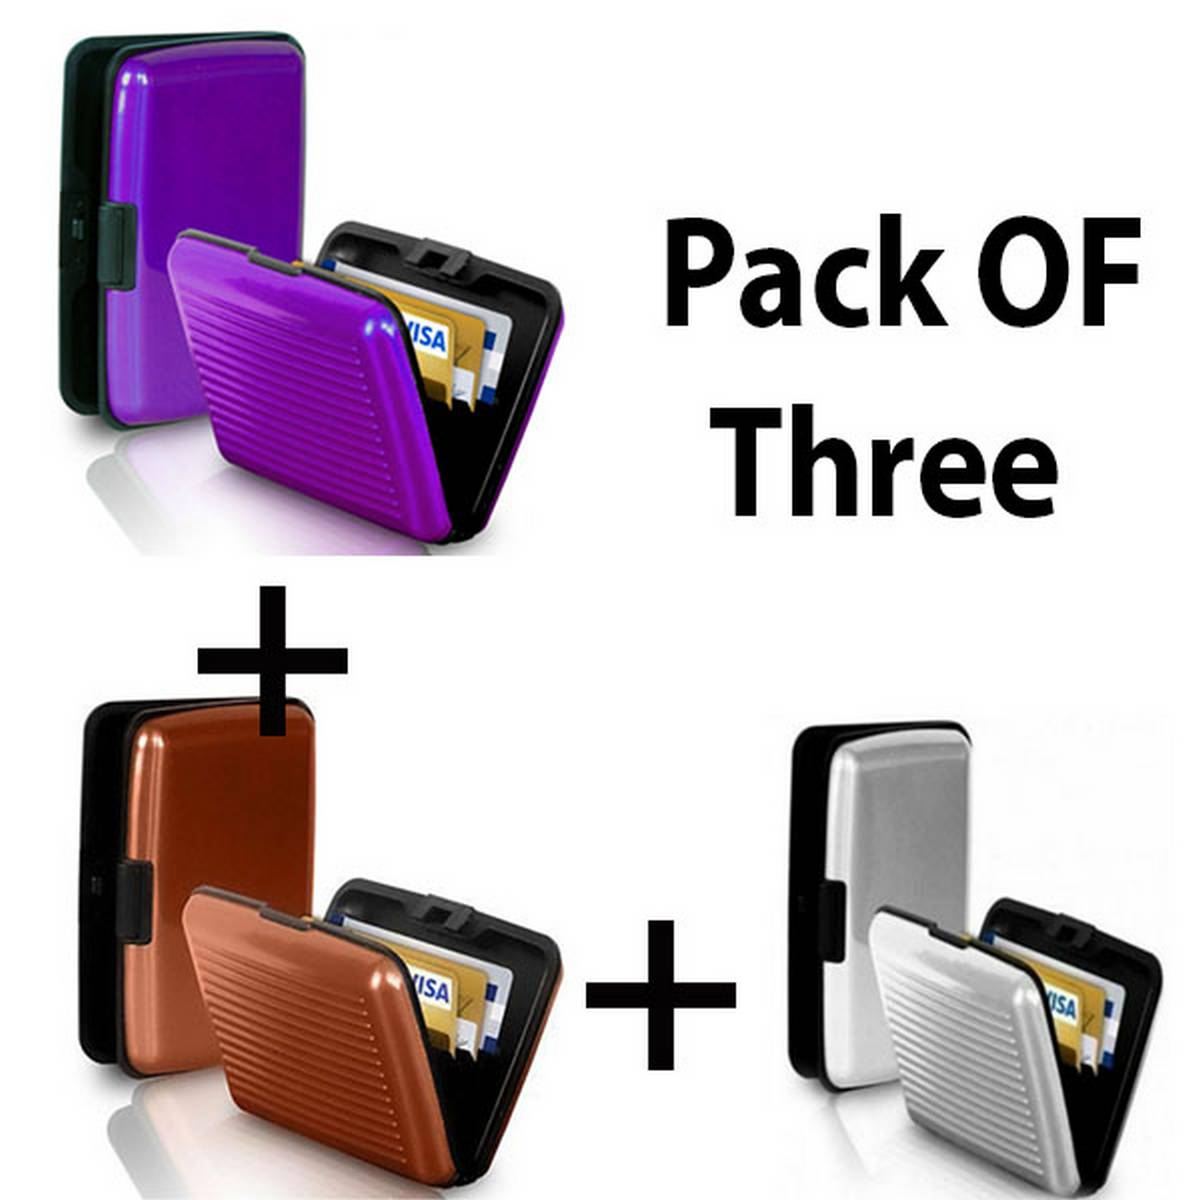 Pack Of Three  Aluma Wallet Water Proof Resistant Card Protect Holder 6 pockets Ultra Slim Portable For Travel Both For Men And Women- Plastic with Tin Coated